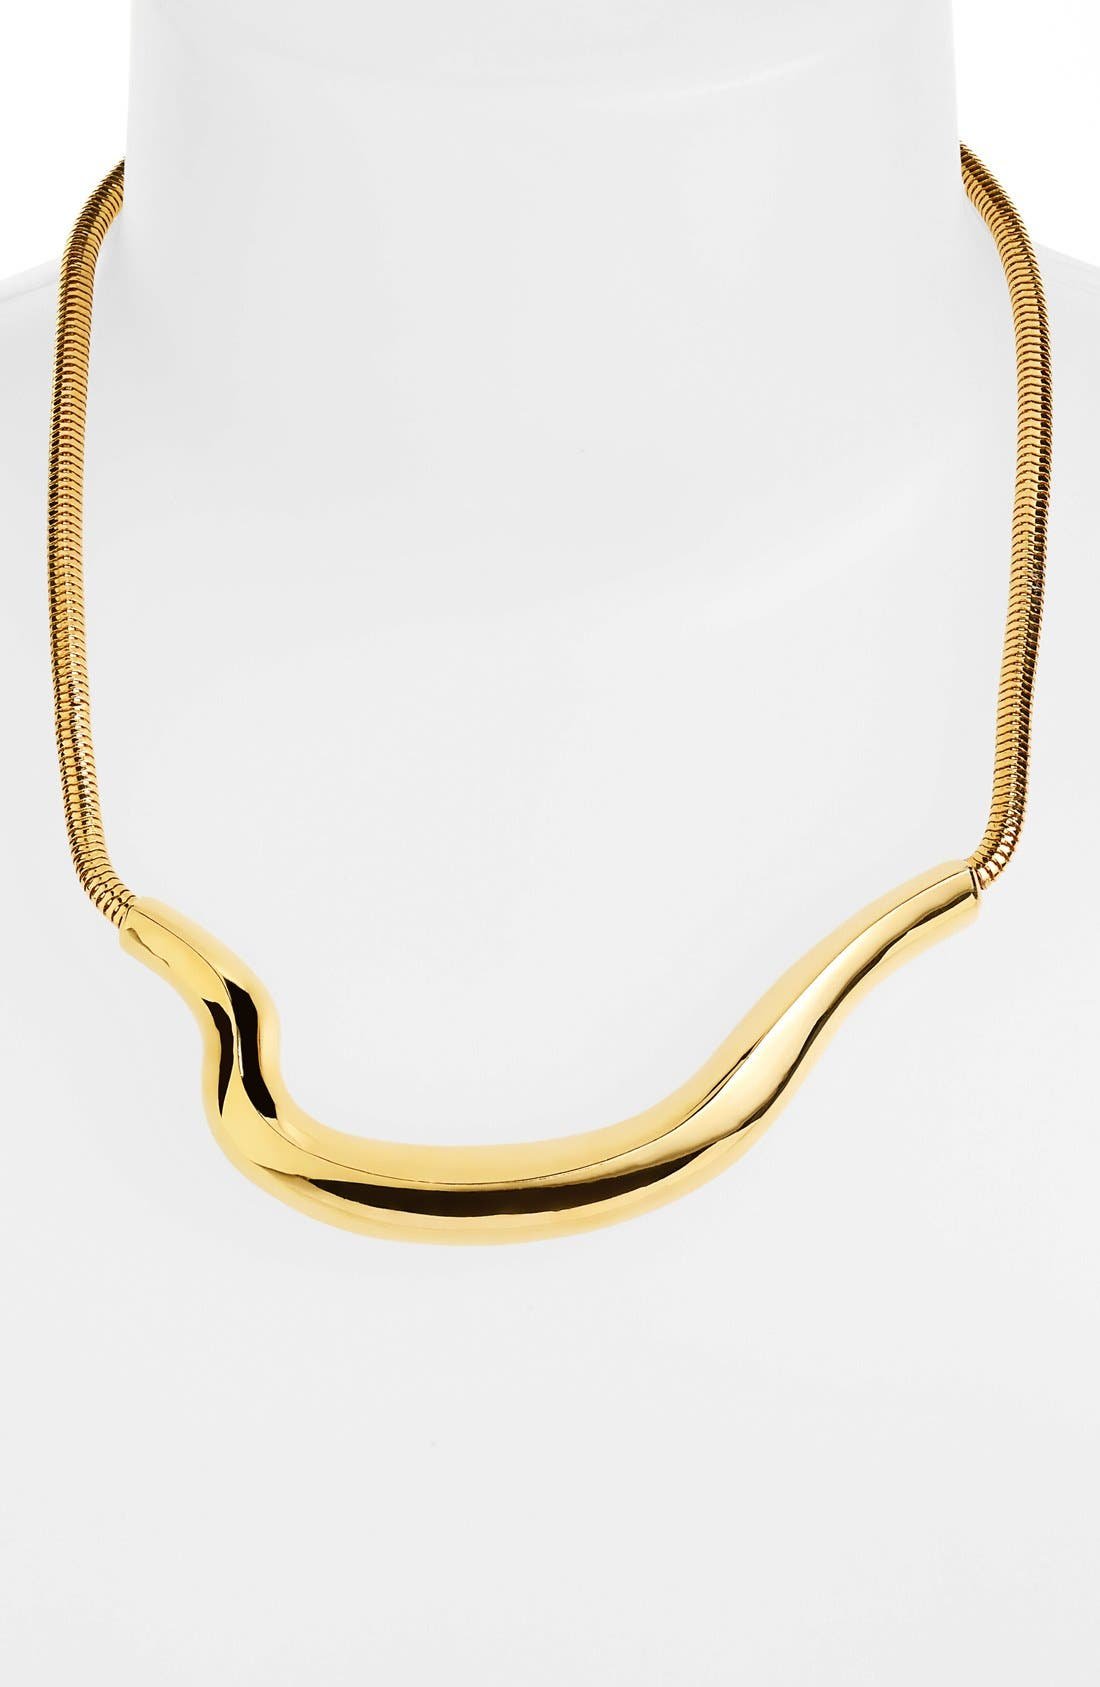 Alternate Image 1 Selected - Vince Camuto 'Liquid Luxury' Frontal Necklace